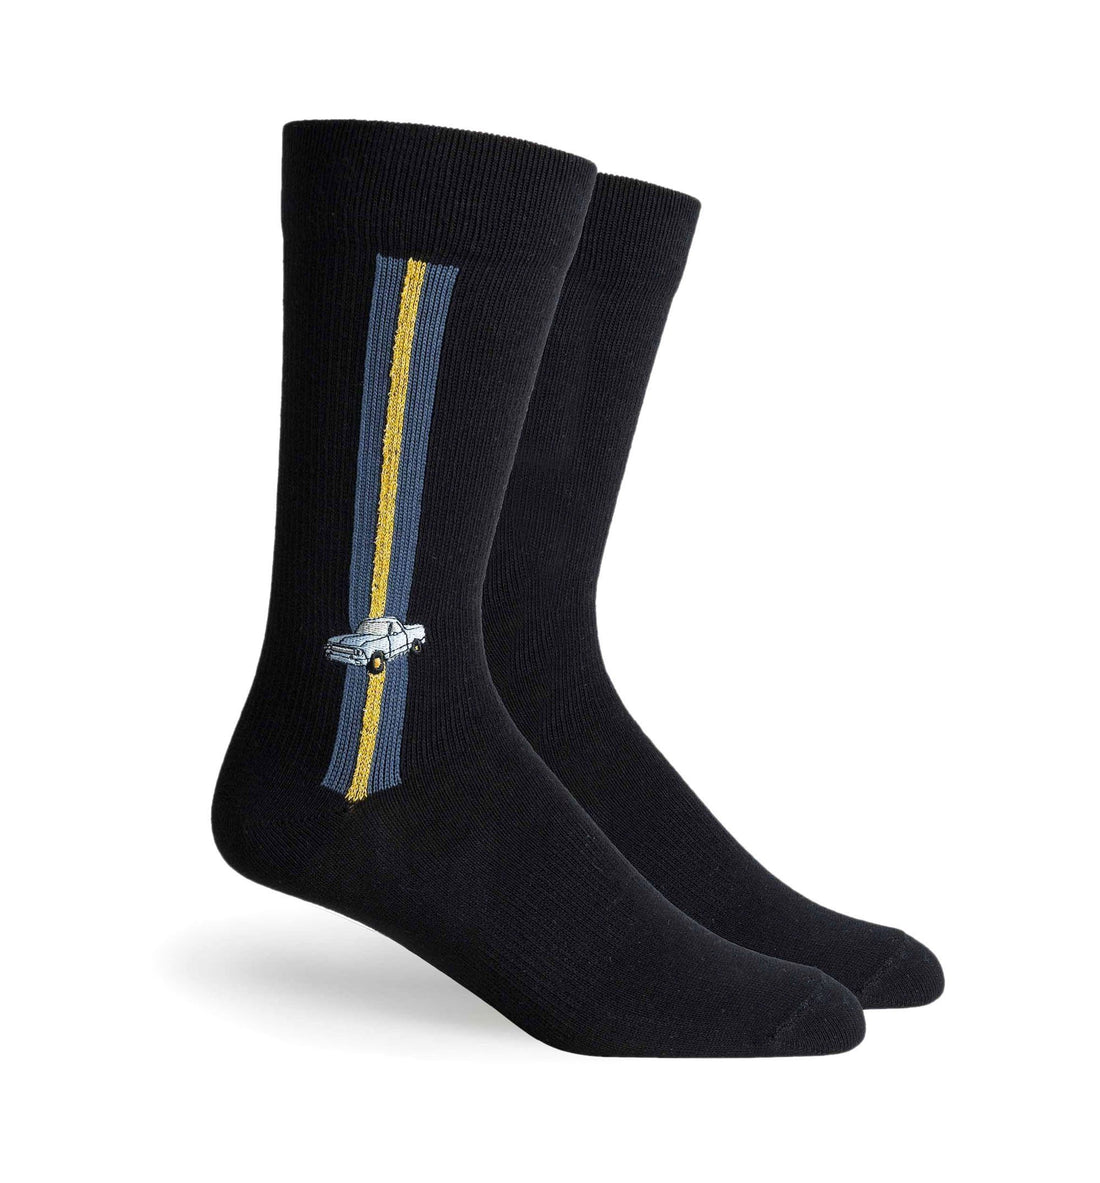 Richer Poorer Inc Camino Sock - Black - Socks/Underwear - Iron and Resin